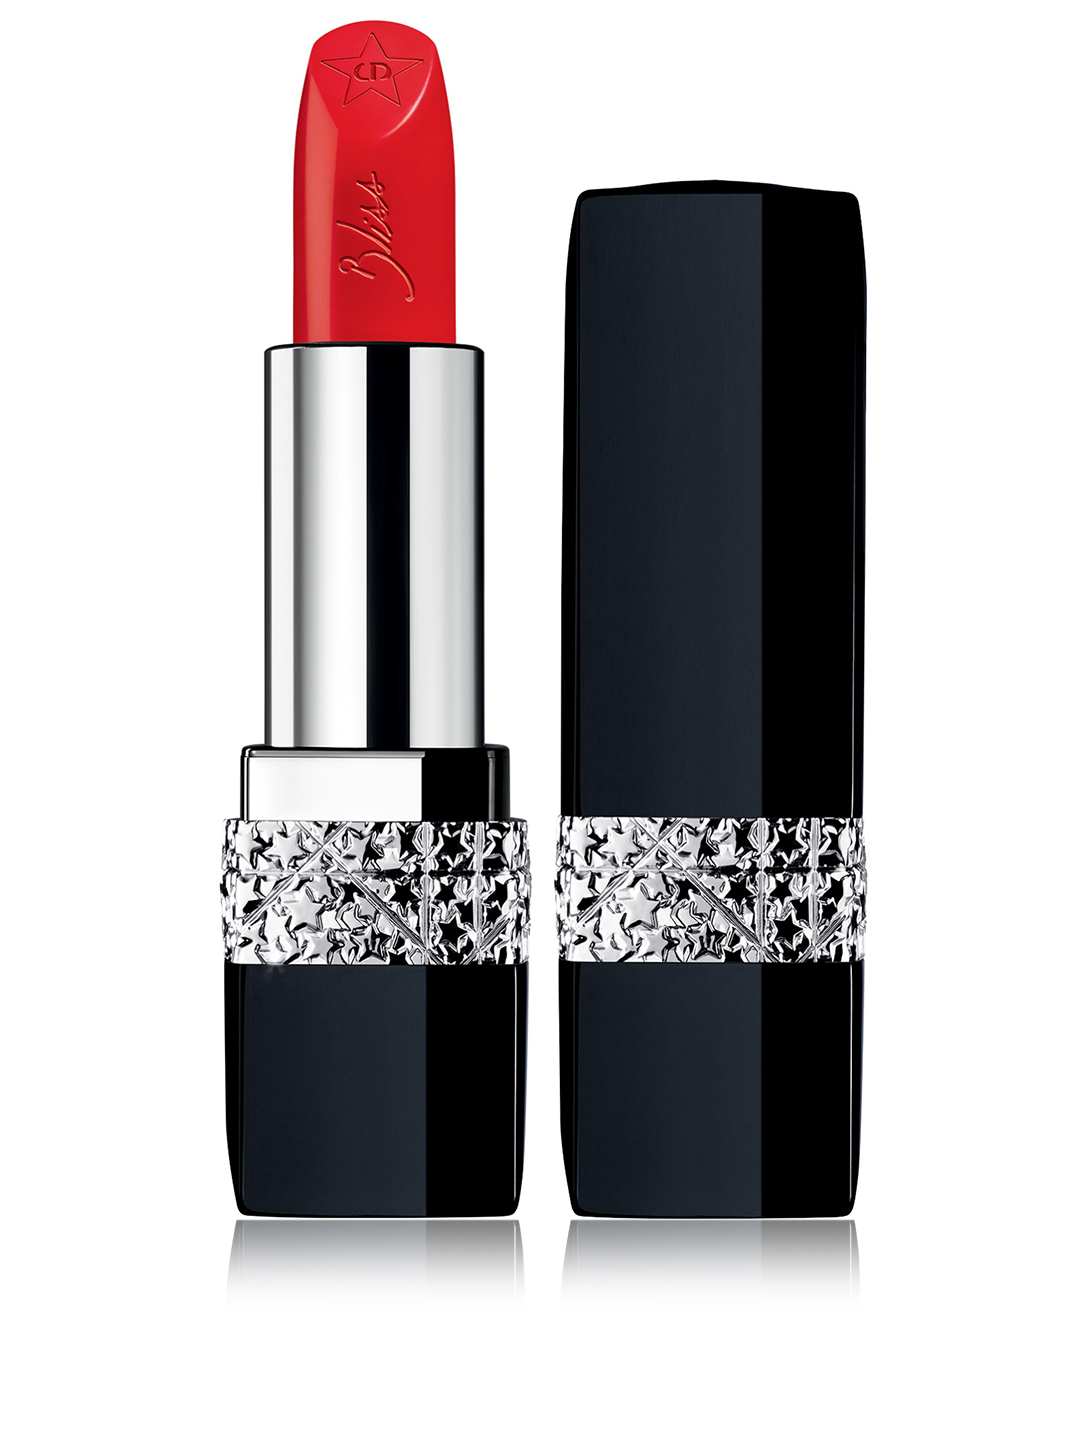 DIOR Rouge Dior Bijou Lipstick – Midnight Wish Limited Edition Beauty Red